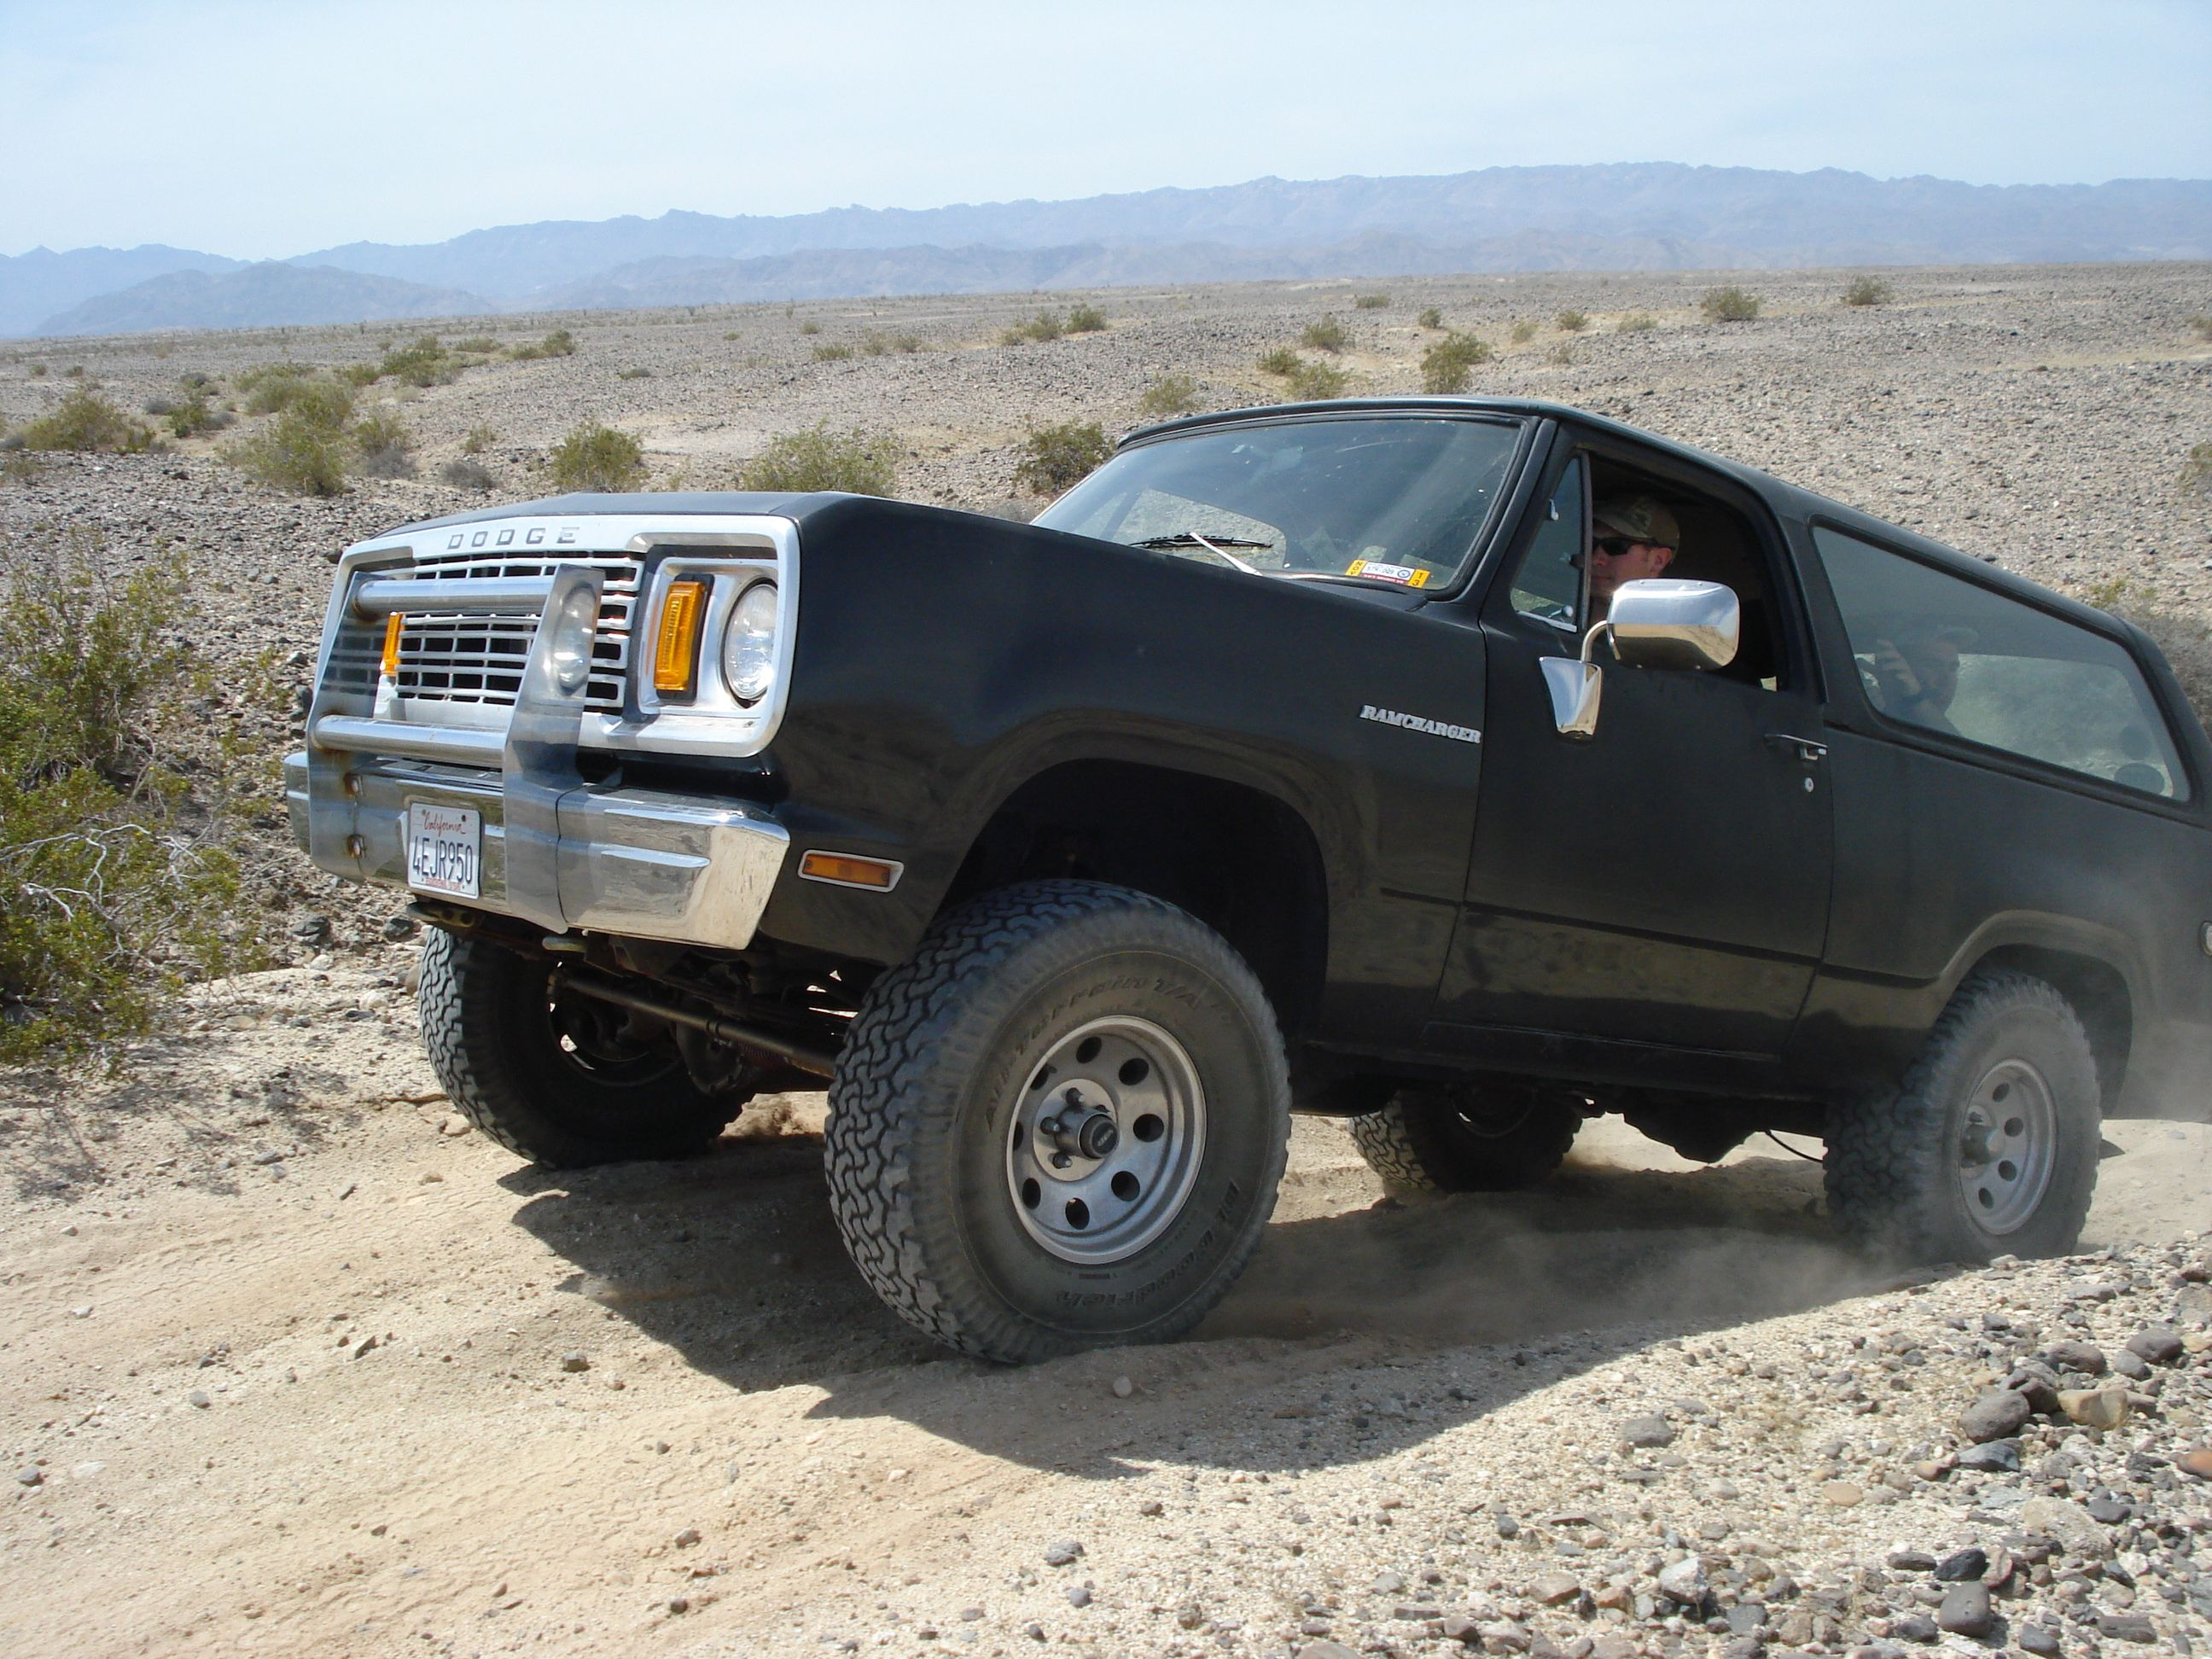 1978 dodge ramcharger w a 440 engine and 3 speed torqueflight transmission i own